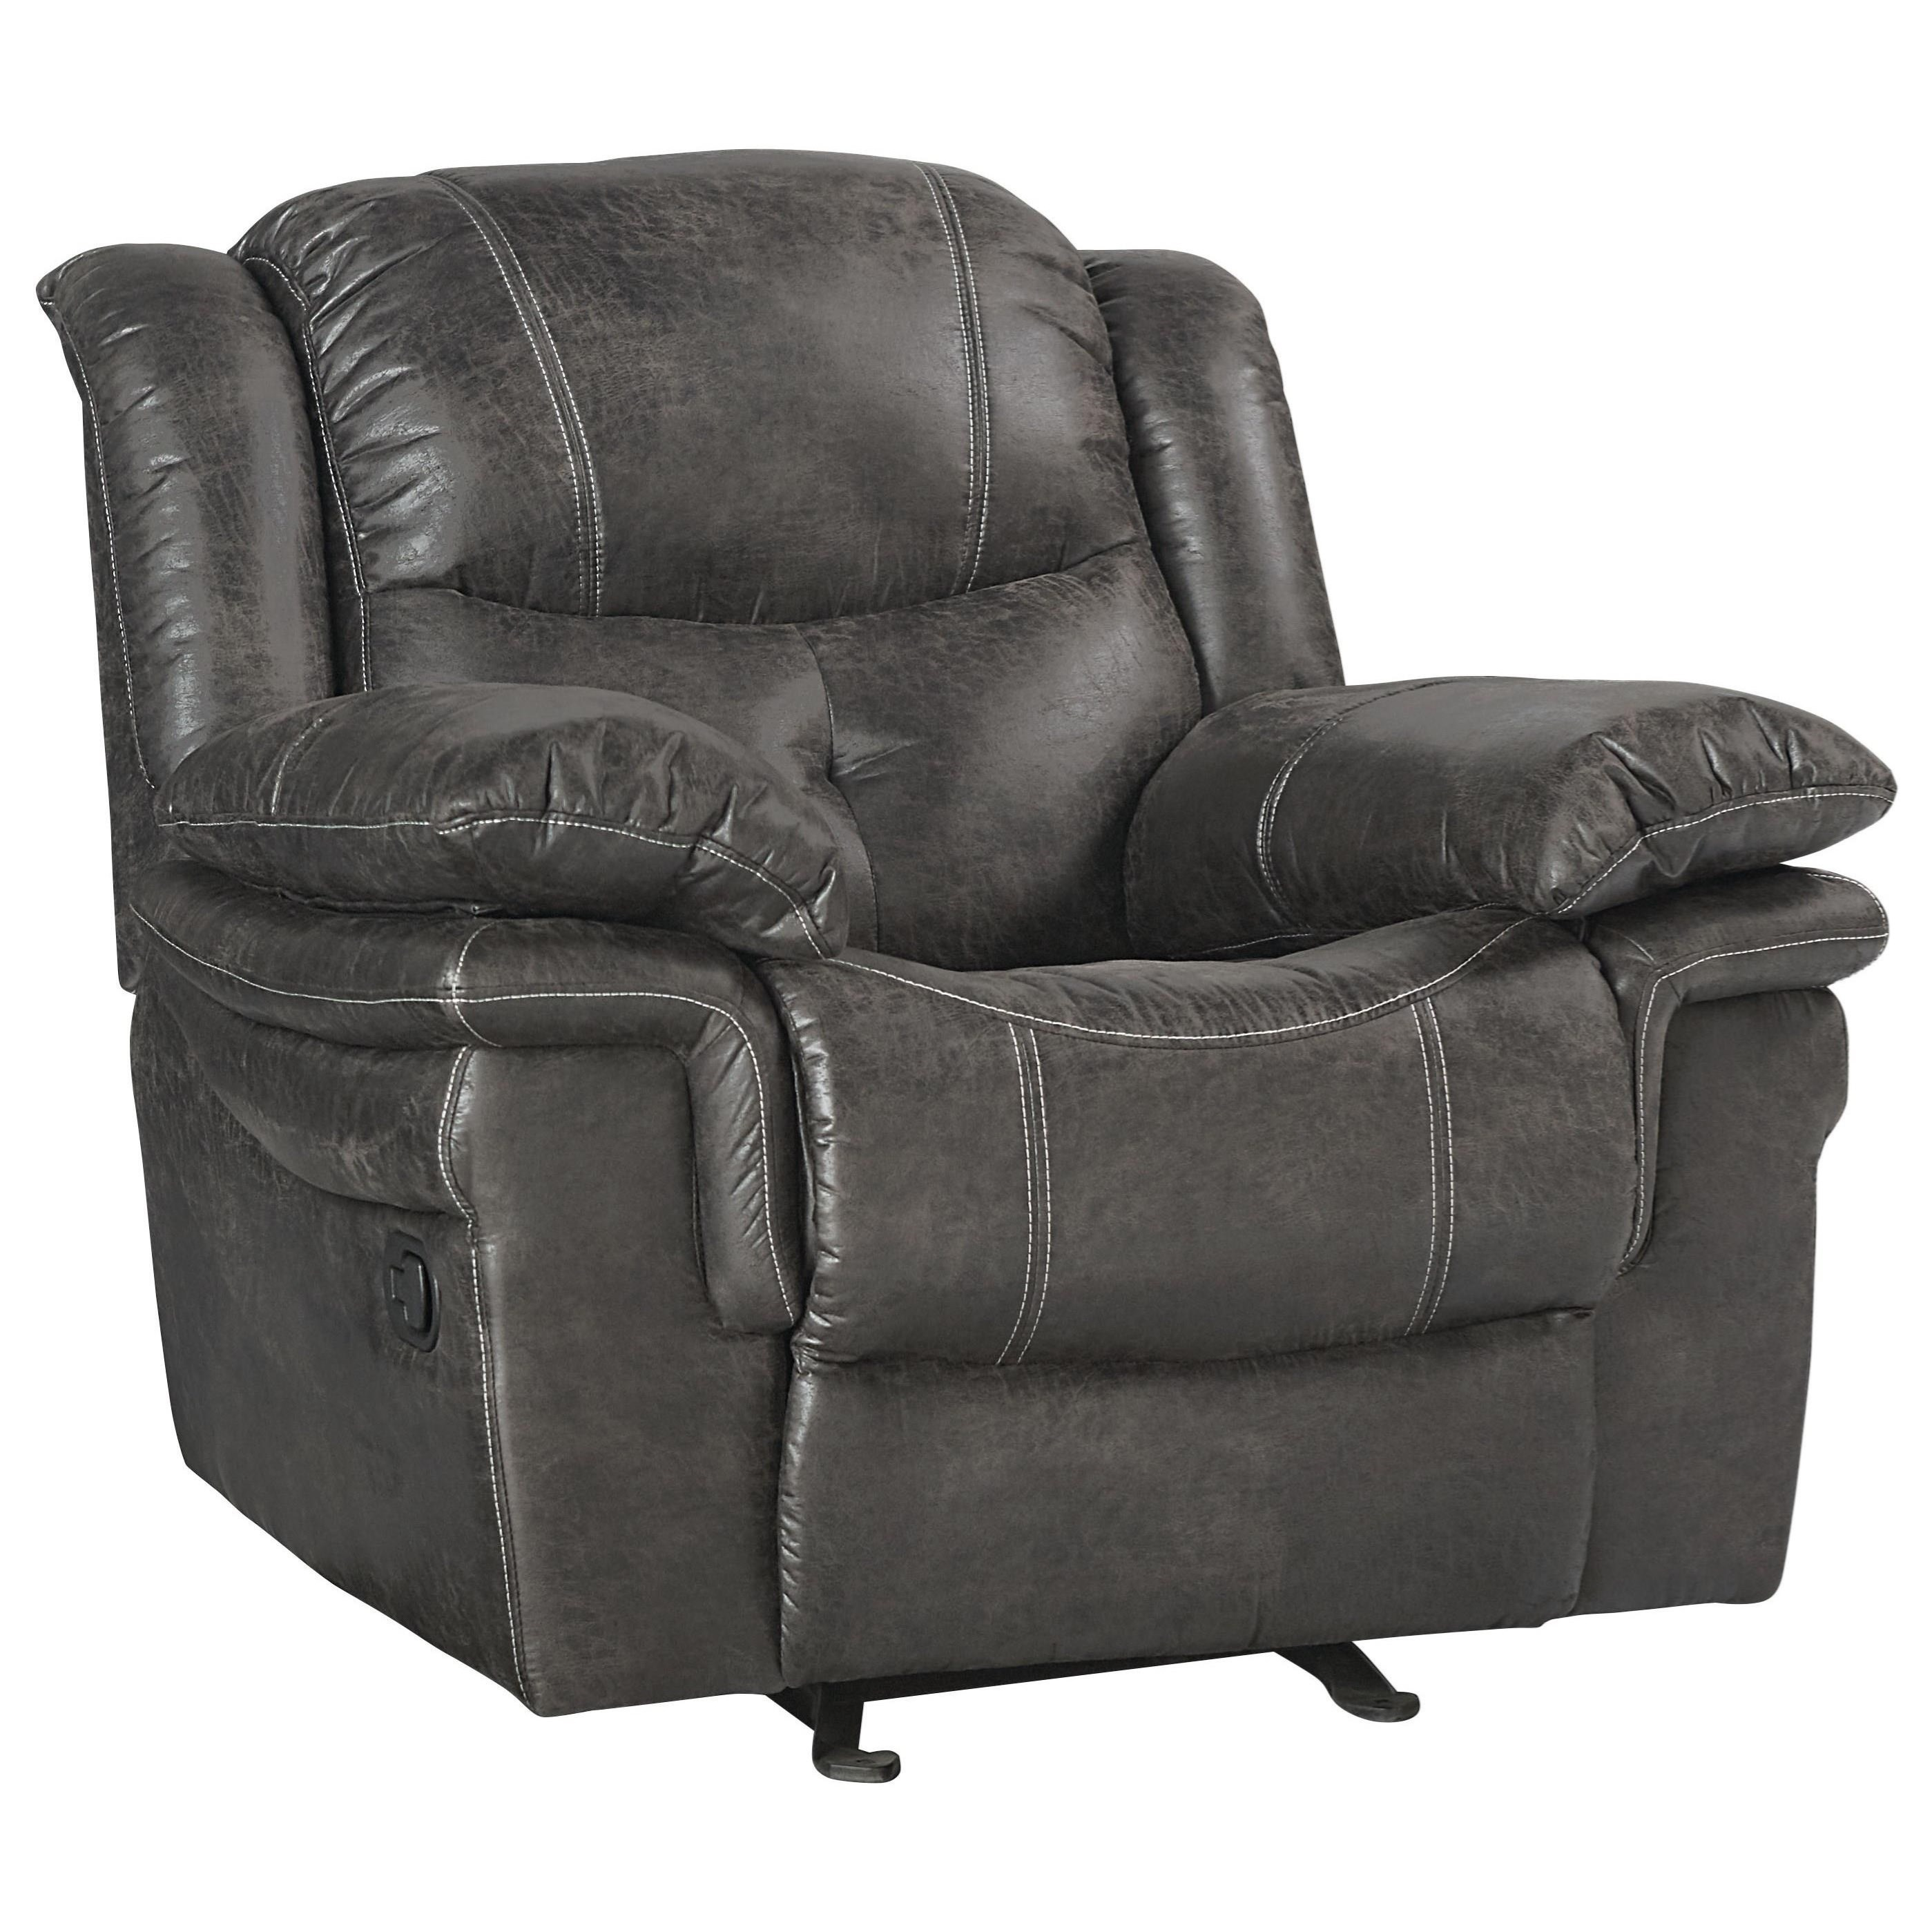 Standard Furniture Huxford Recliner - Item Number: 4007983